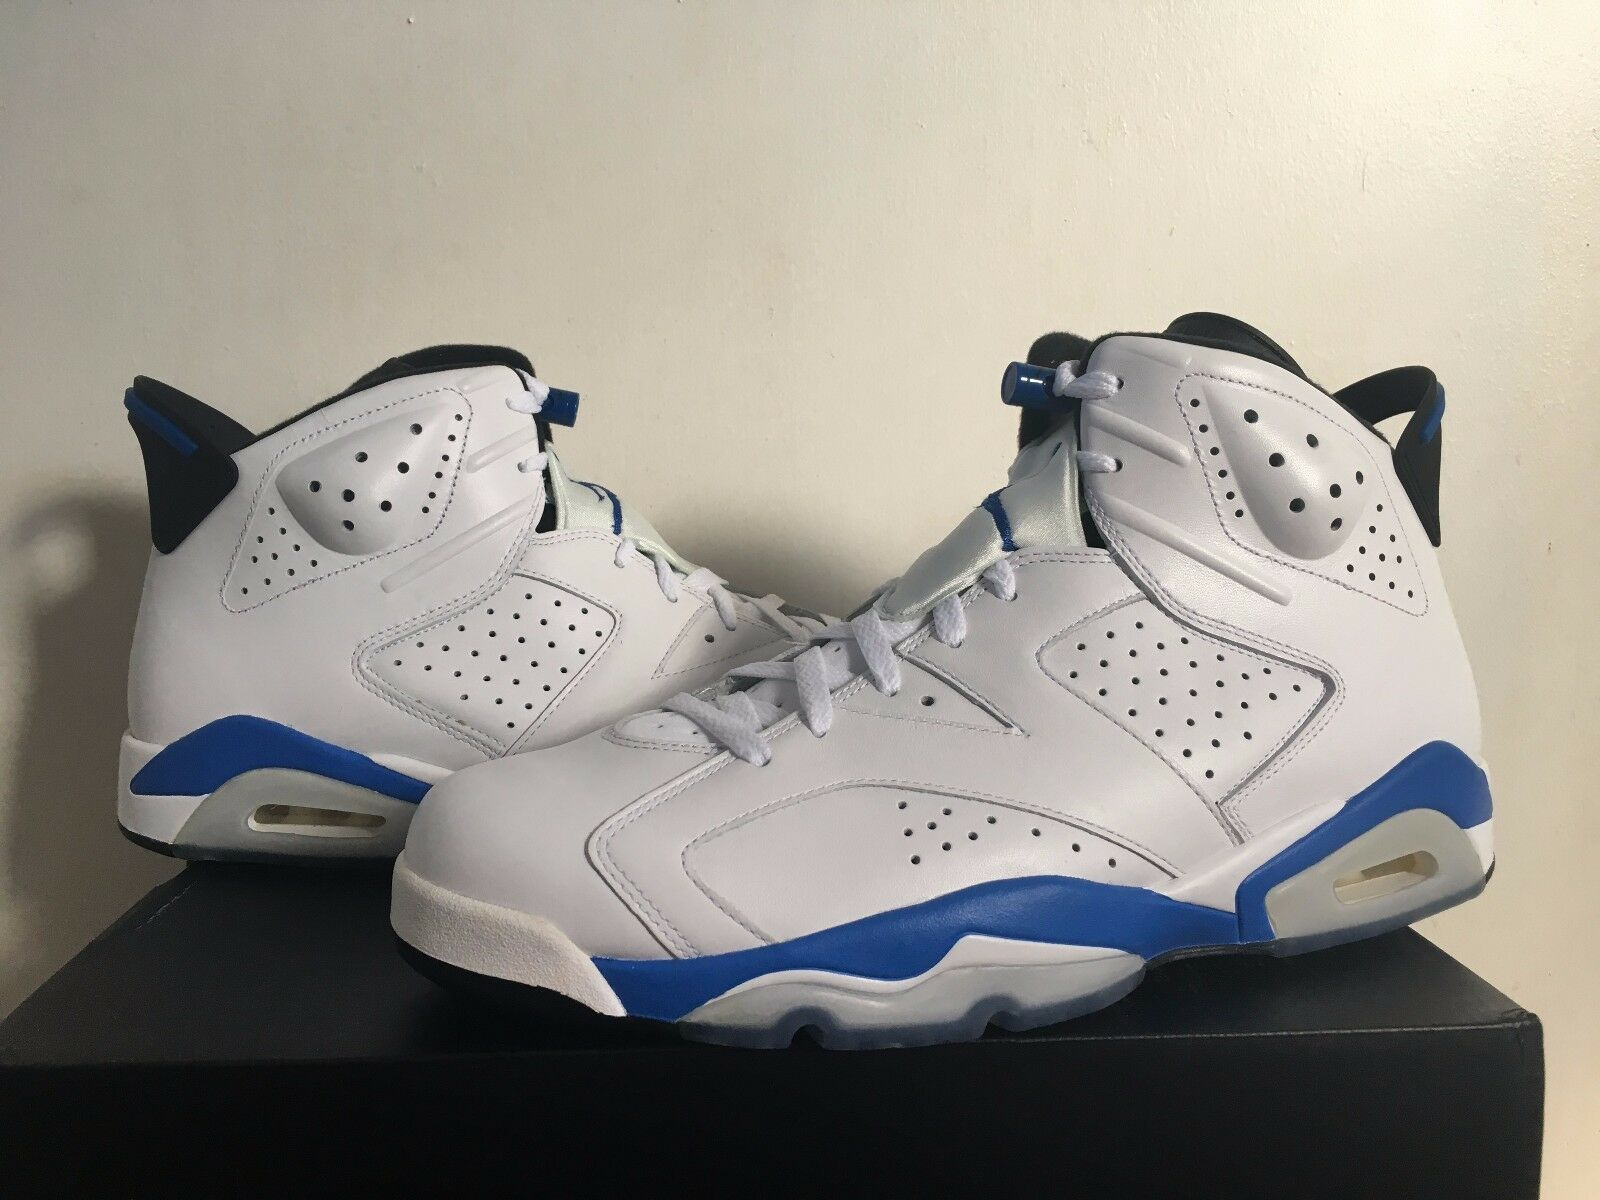 Nike Air Jordan 6 Retro VI White Sport bluee 384664 107 New Size 13 B Grade